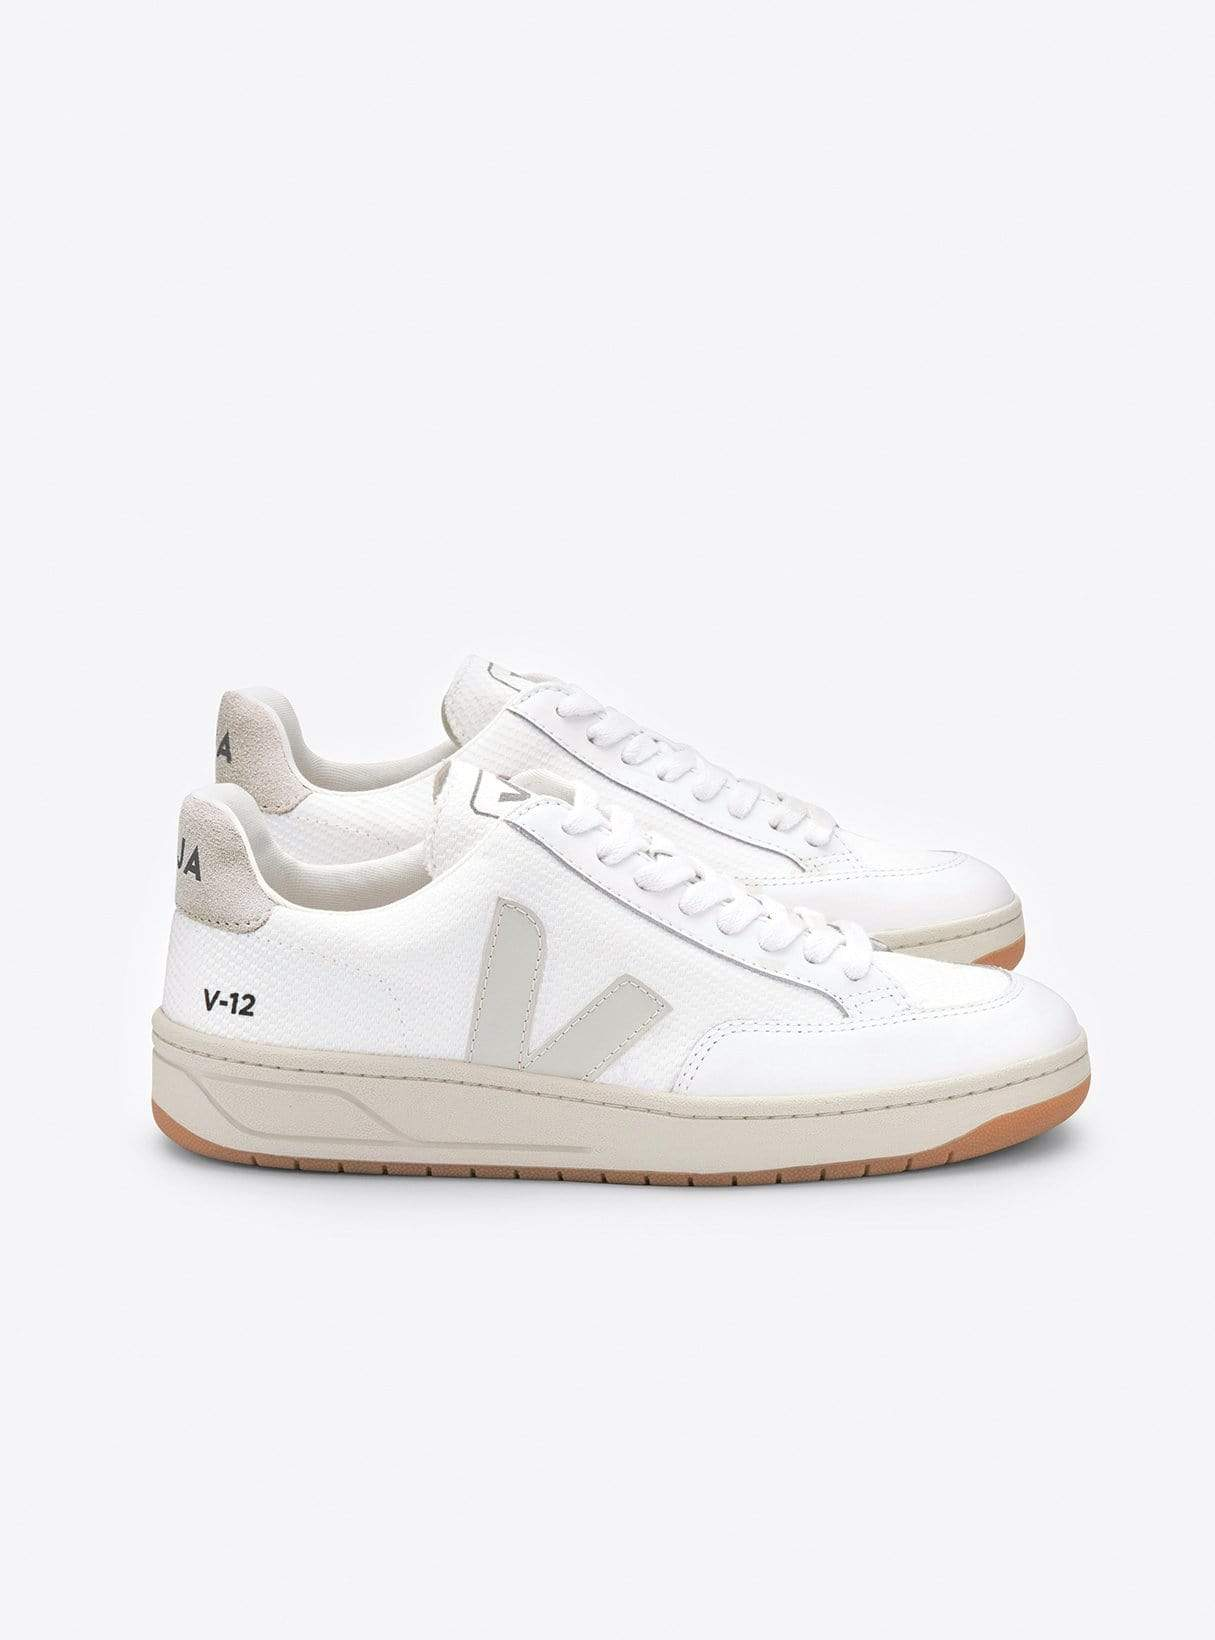 V-12 b-mesh sneaker - white/natural